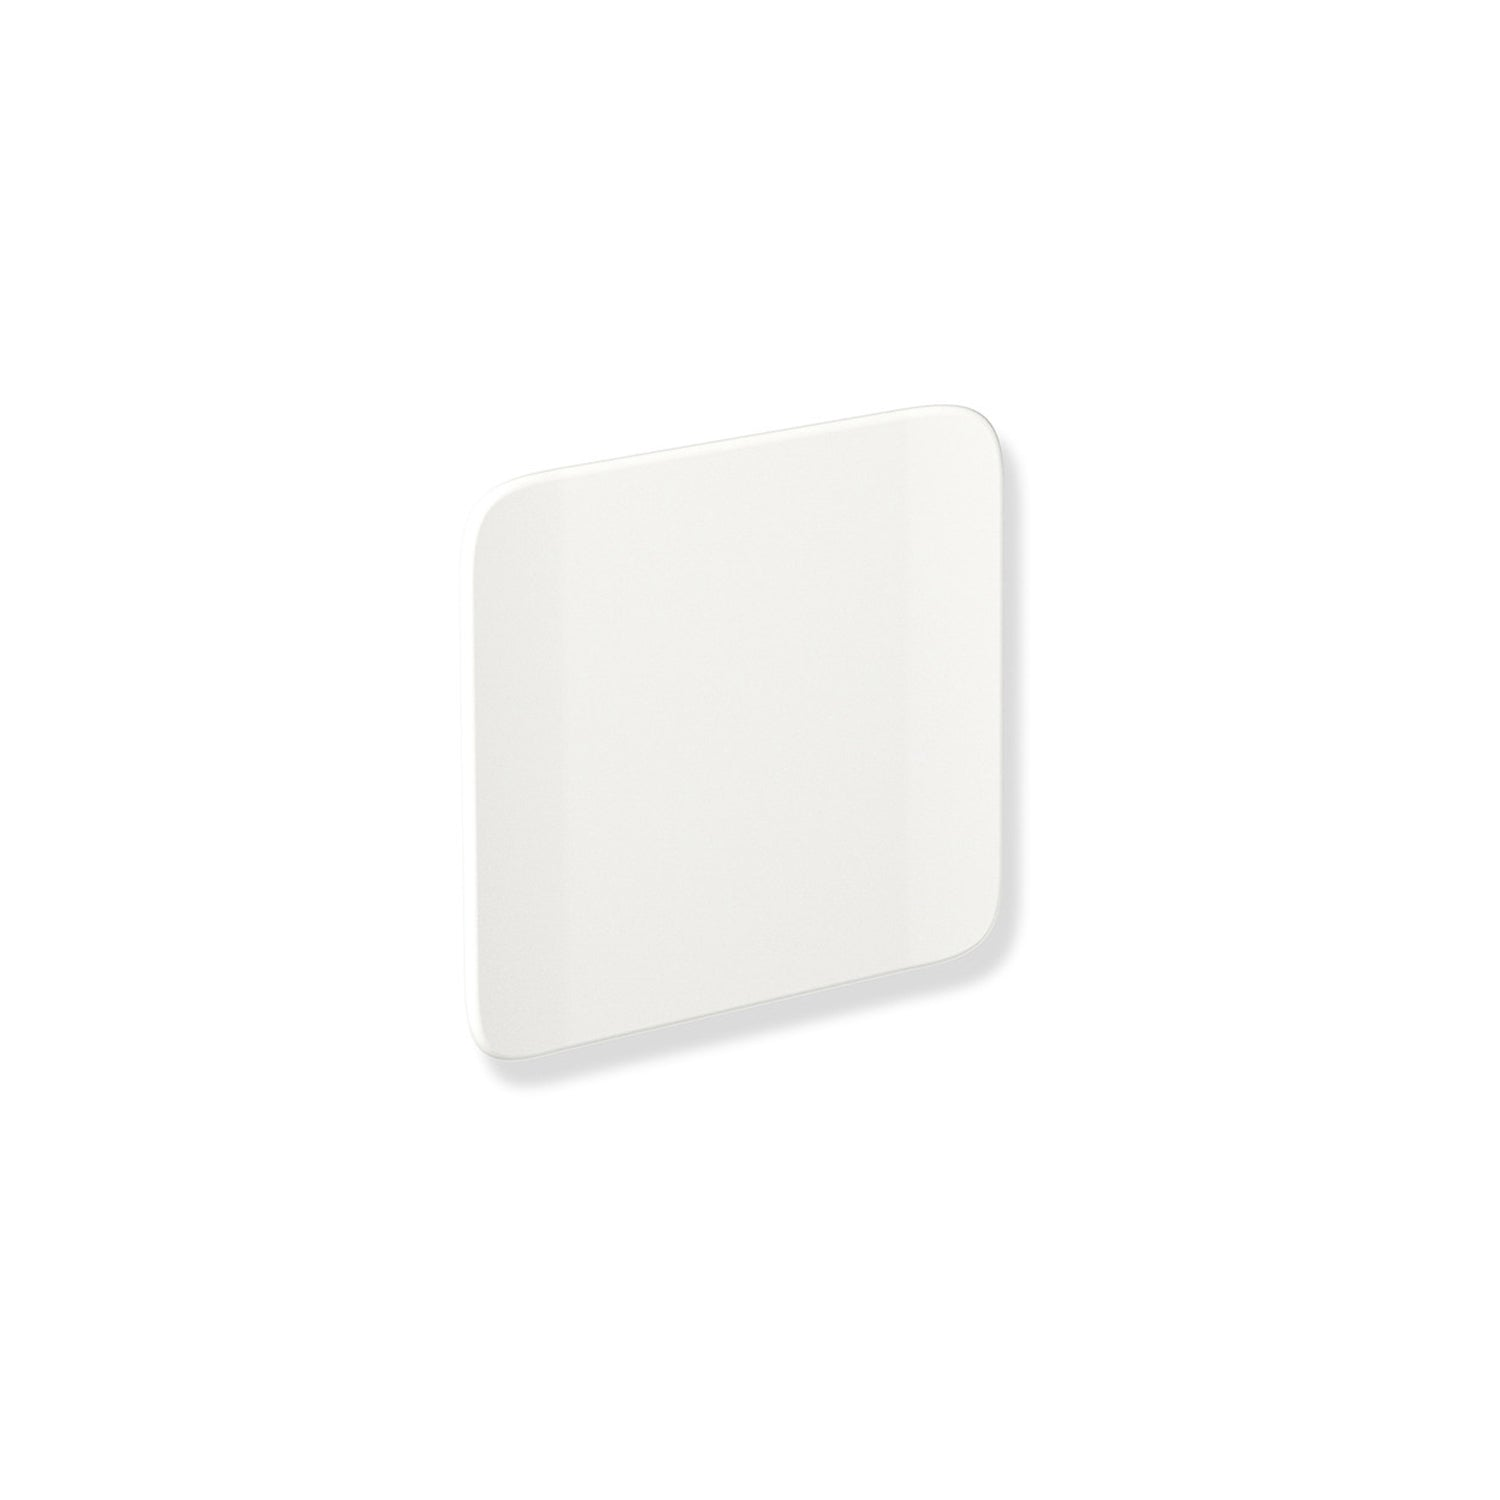 Backrest with Wall Bracket with a matt white finish on a white background